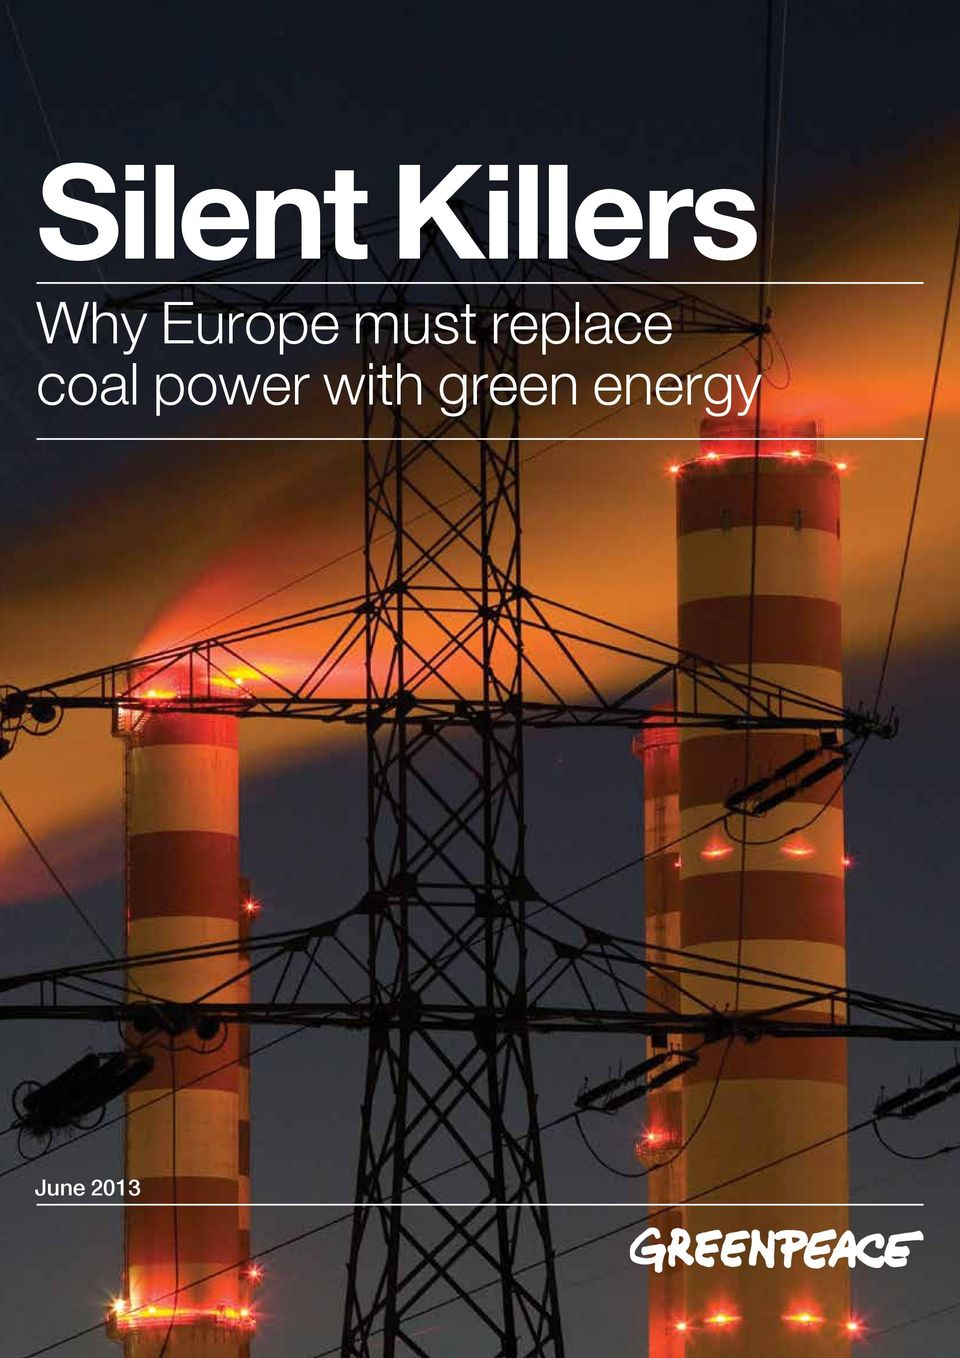 coal power with